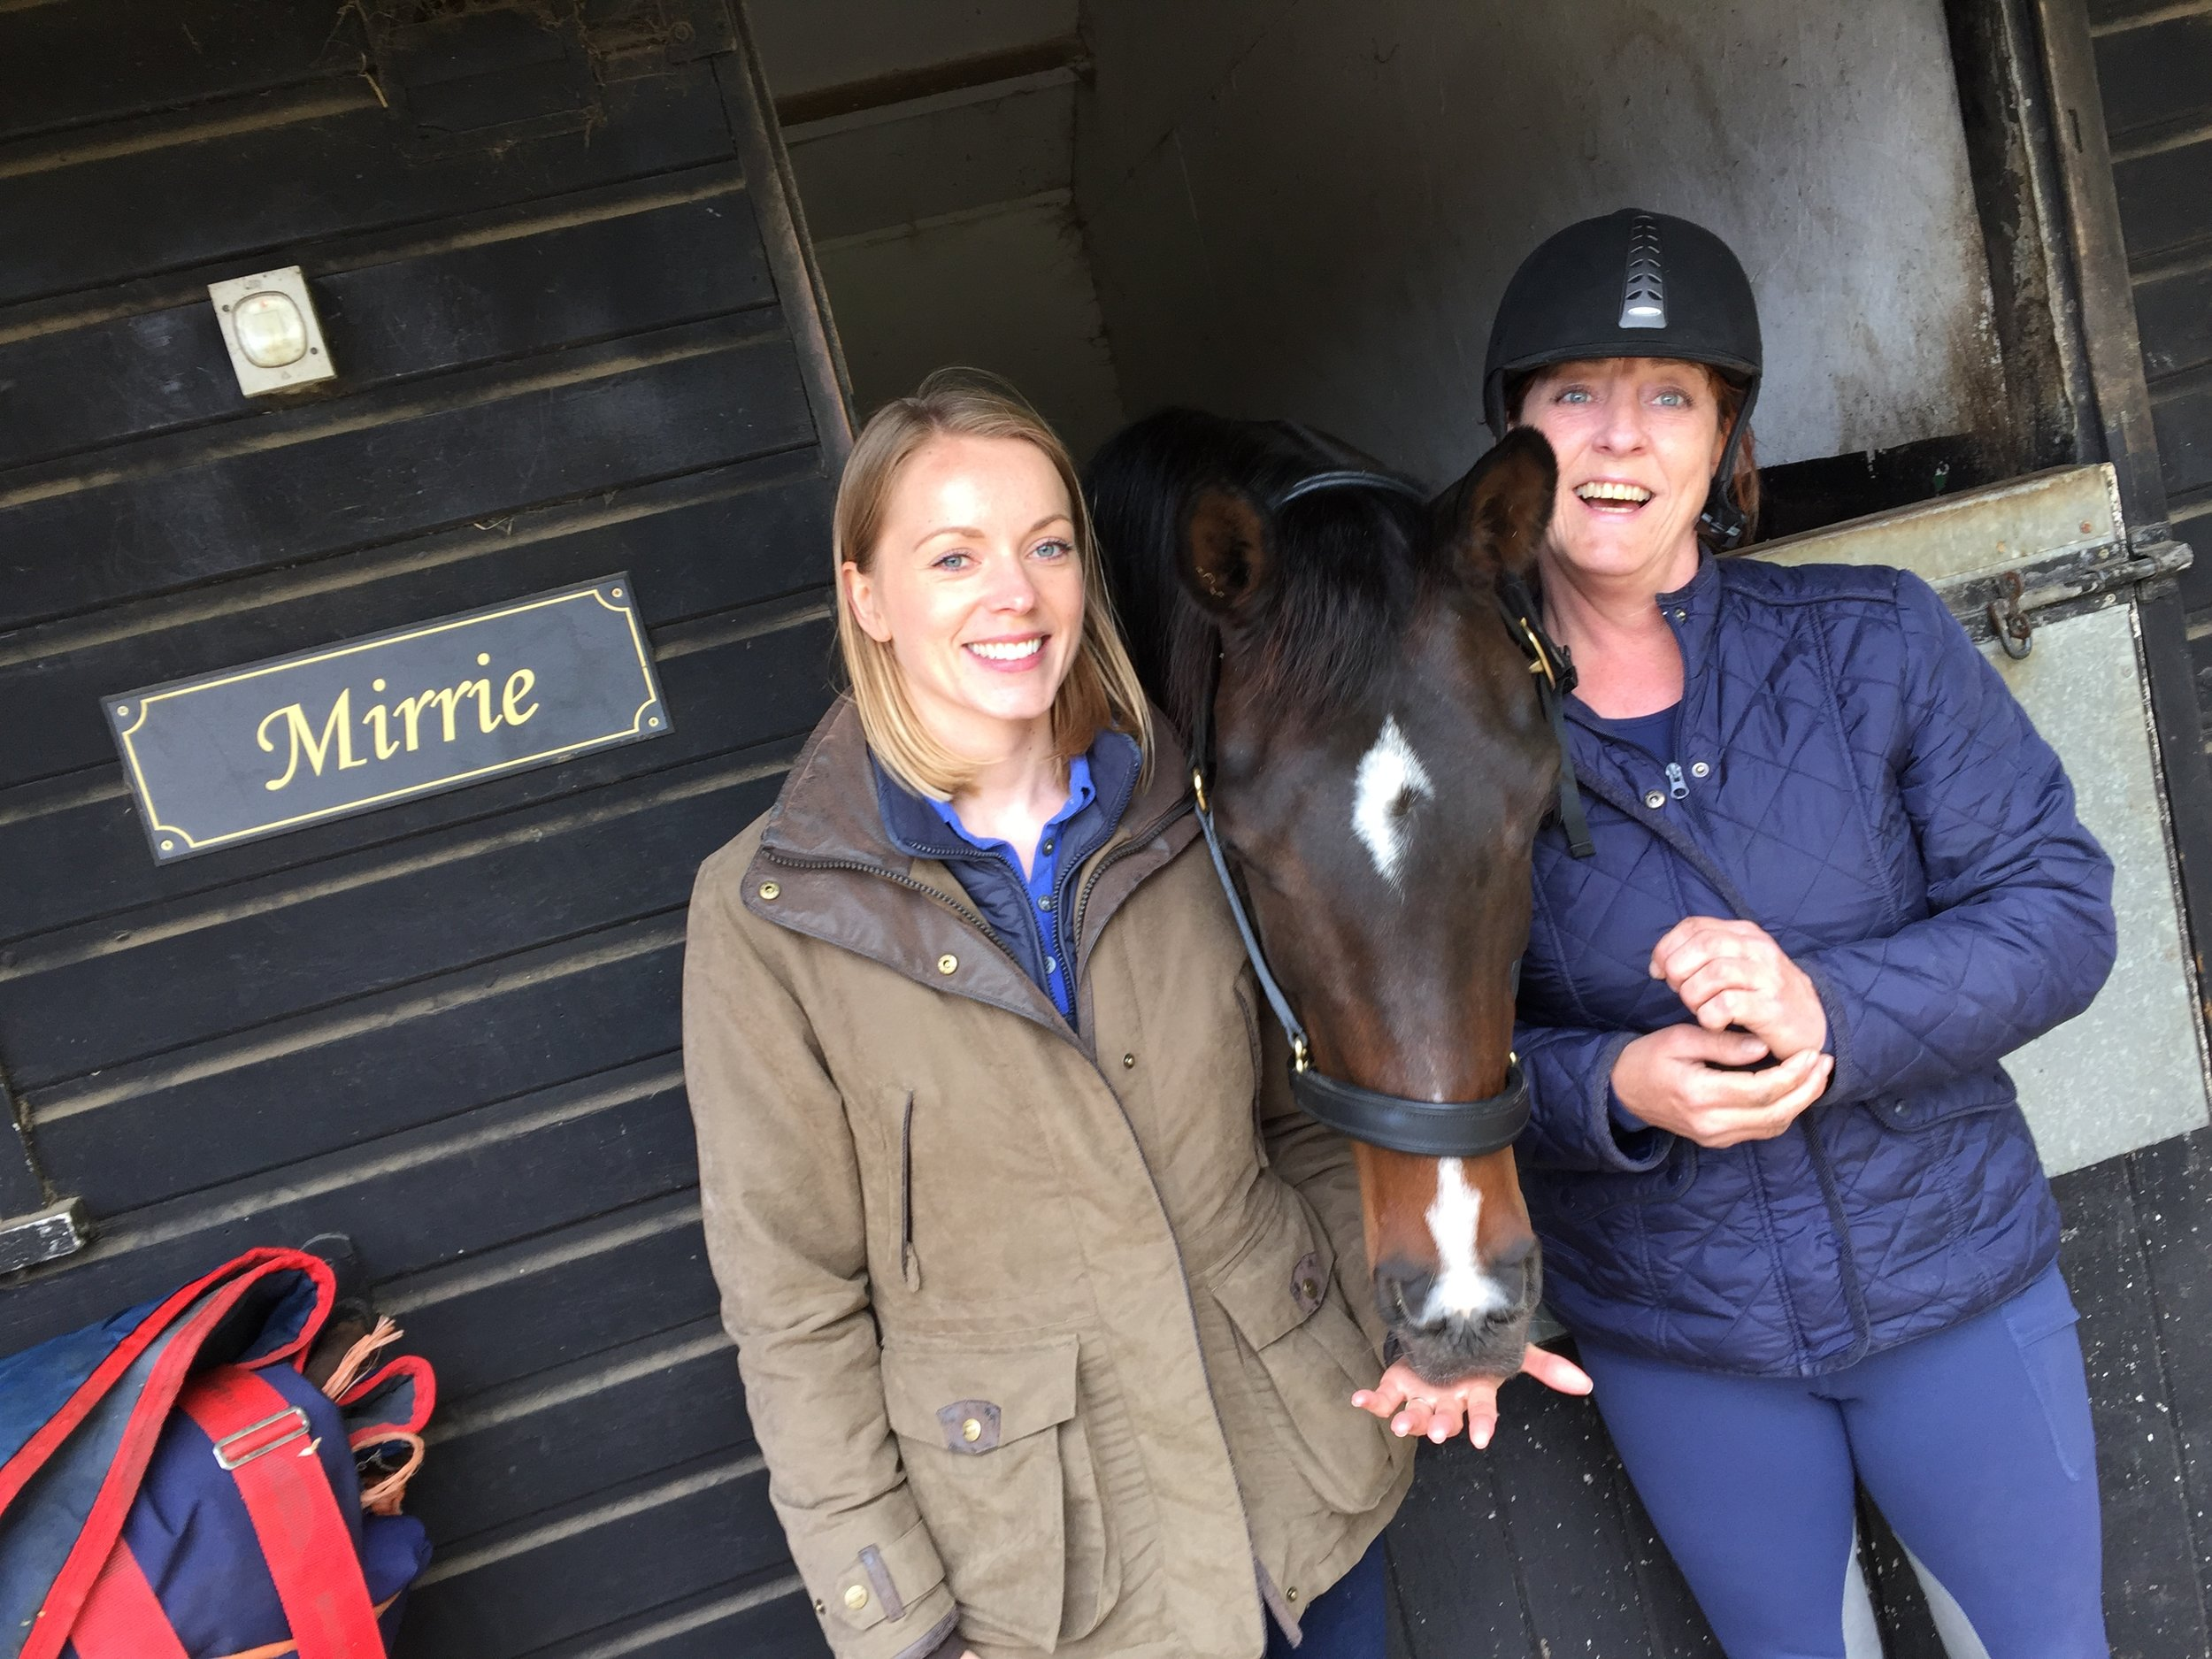 Your Horse editor Imogen, the lovely Mirrie and her owner, our very own #Hack1000milesambassador, Tracey Sawyer